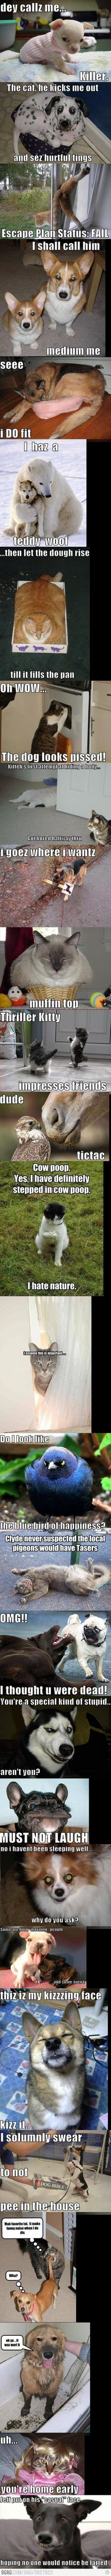 Funny animals! Luv the 9th one.